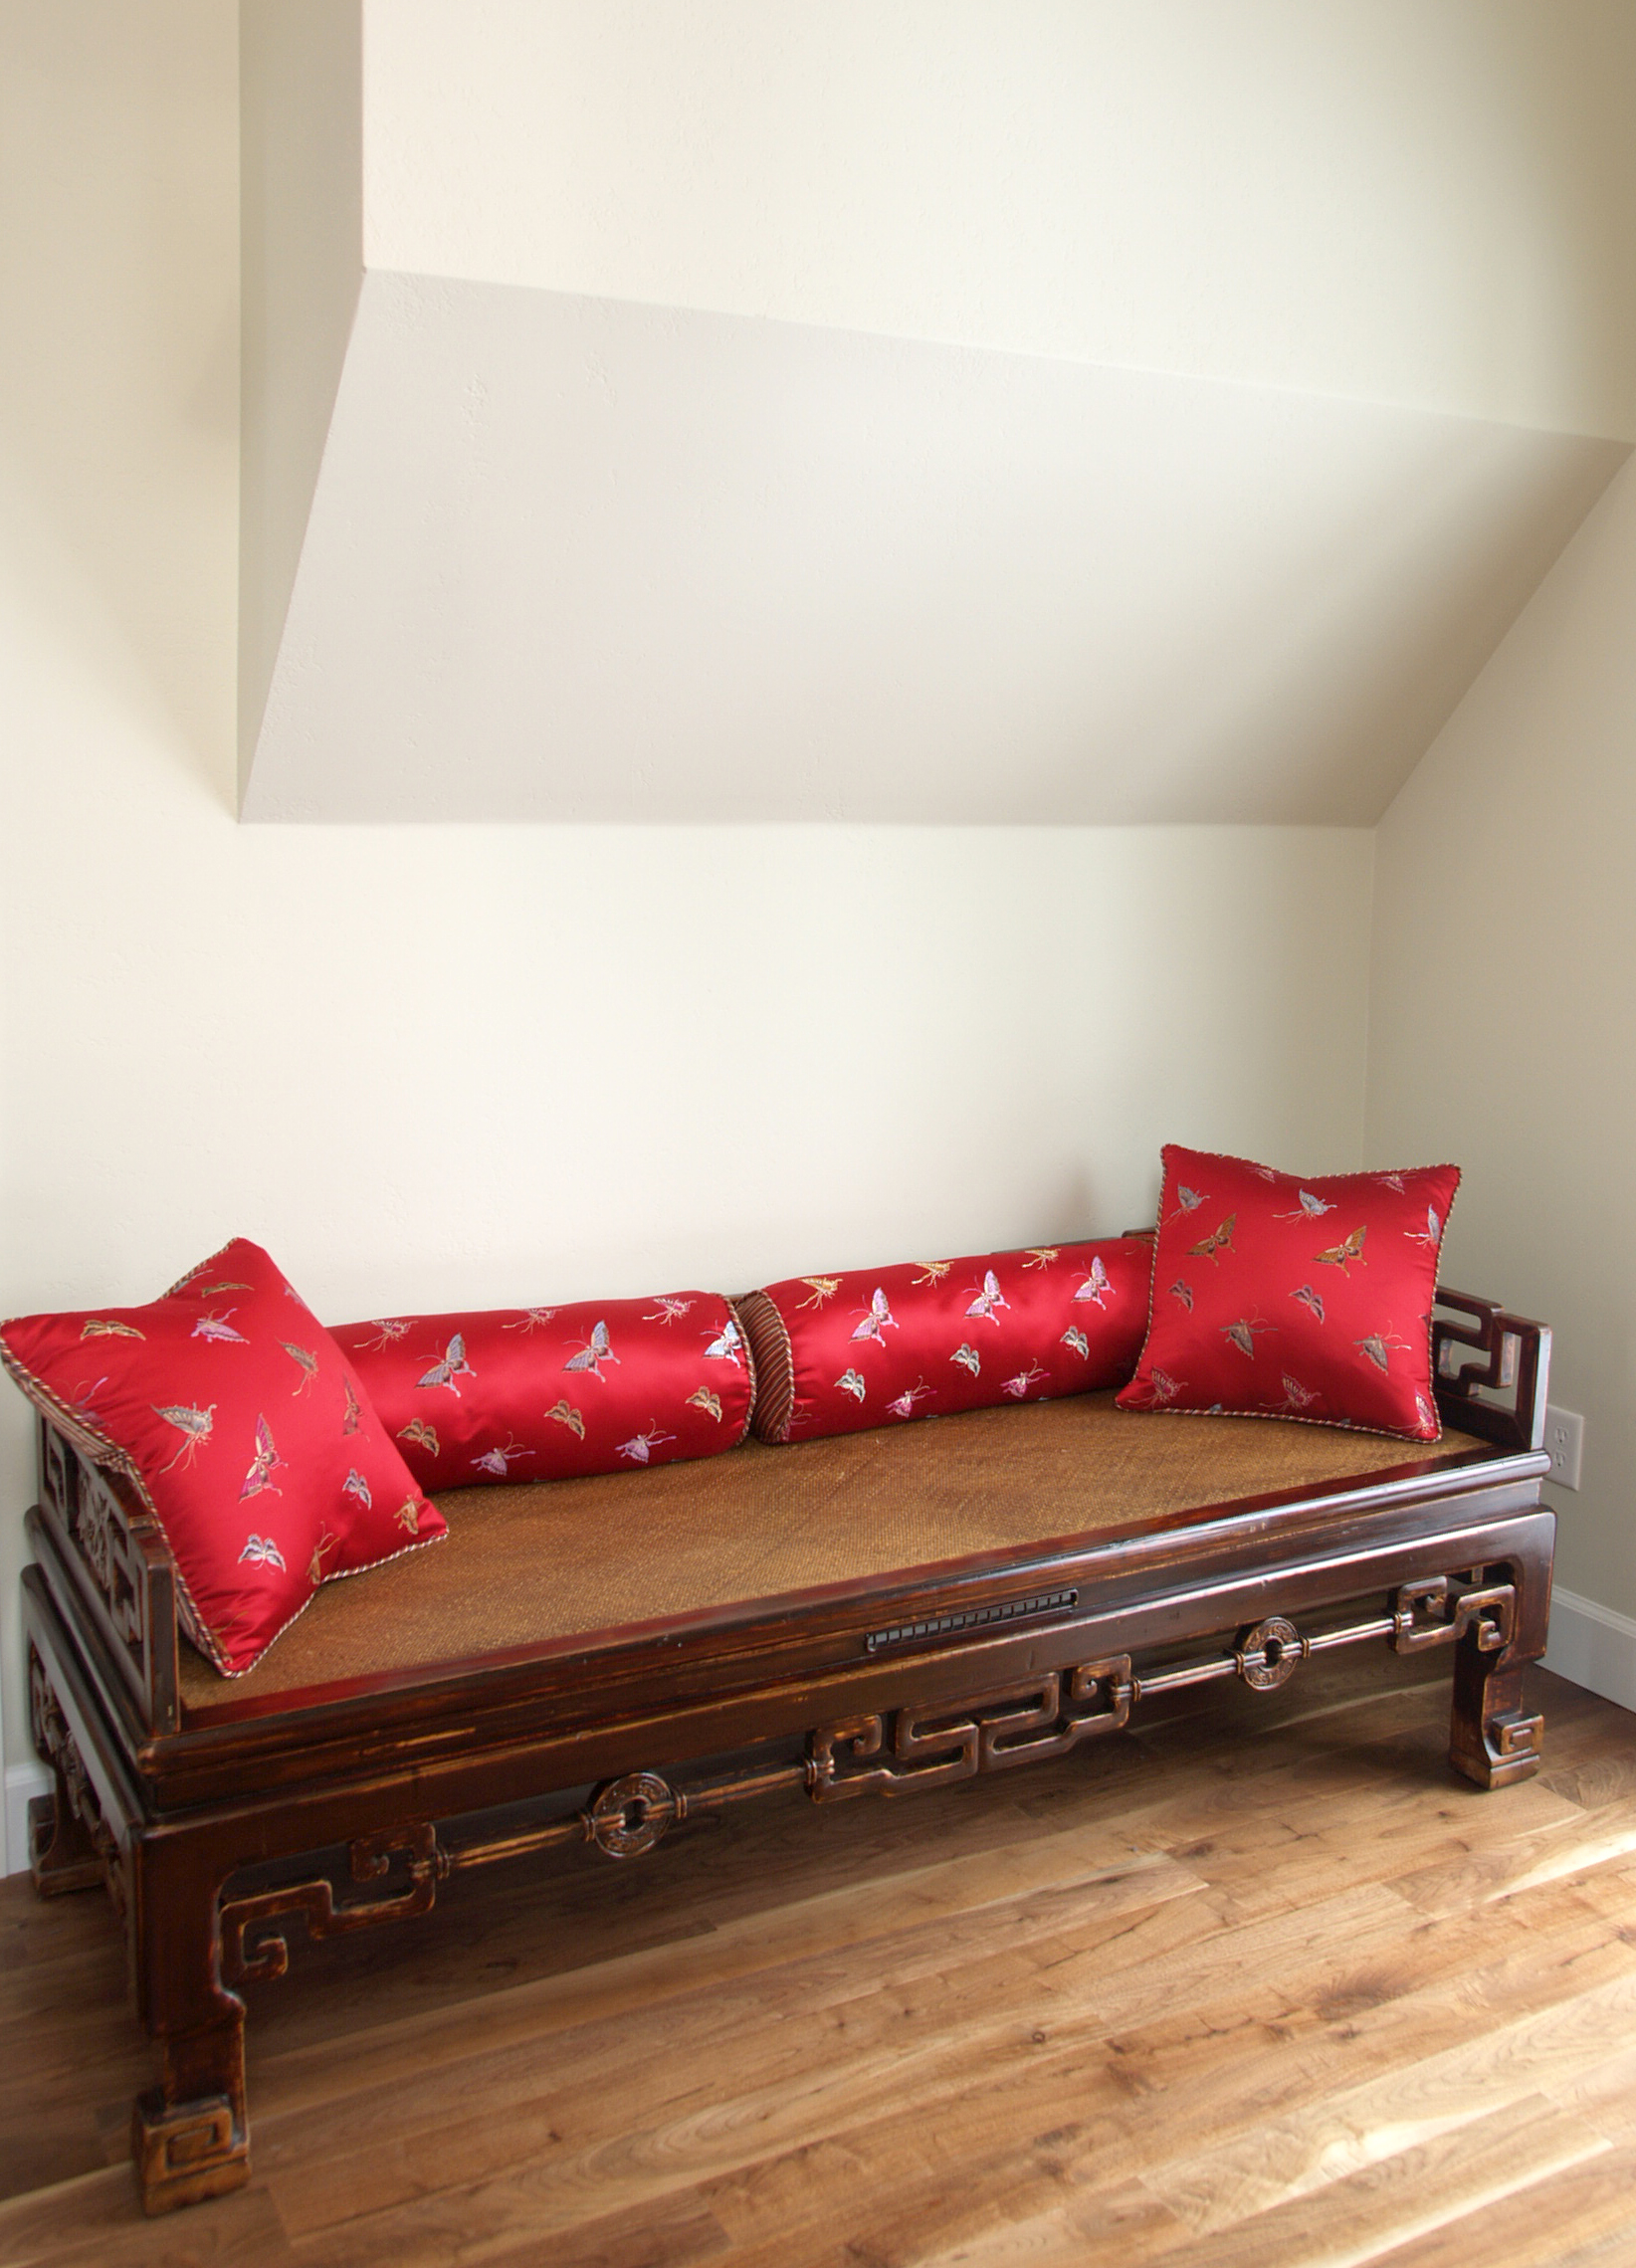 chinese day bed with cushions by Susan Gilmore